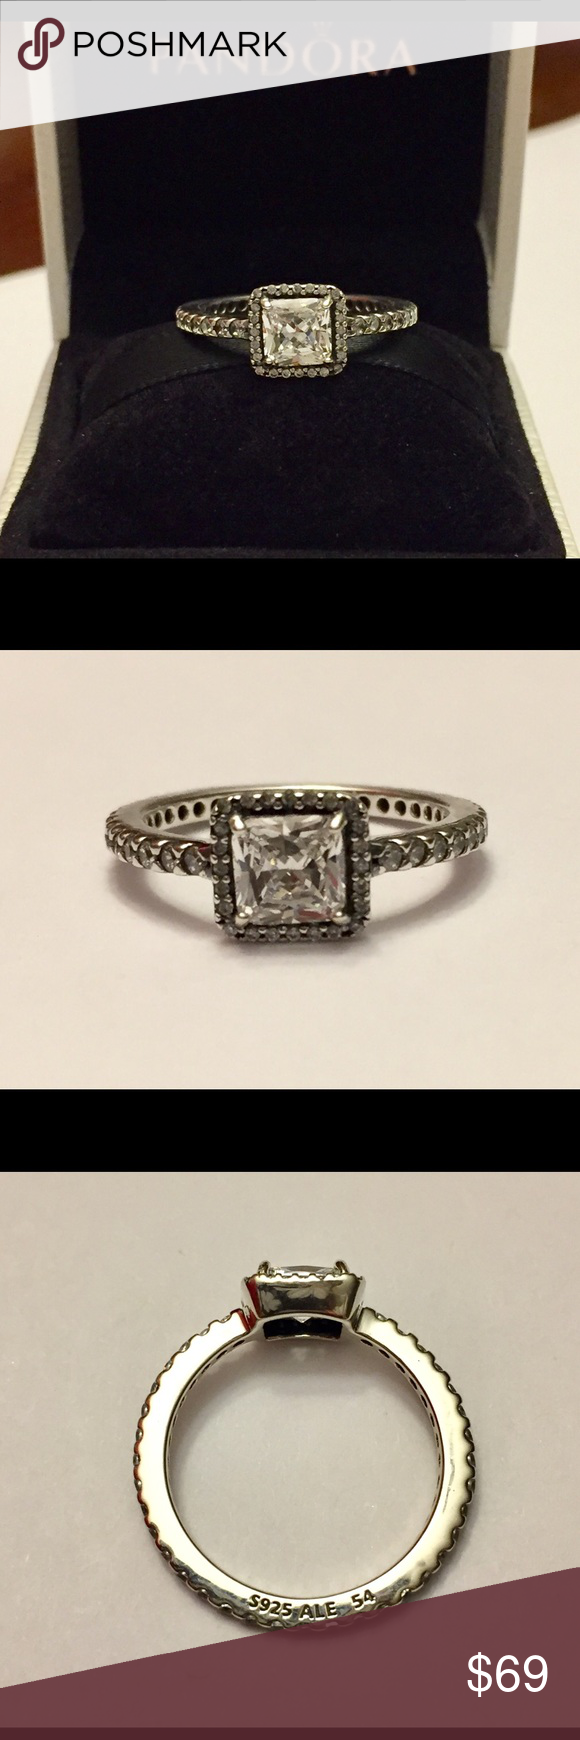 eb2d5785d Authentic Pandora Timeless Elegance Ring size 7-54 Sterling Silver with  Cz's. Hallmark Stamp S 925 ALE. The Pandora Hinged Box is included. No  Trading.